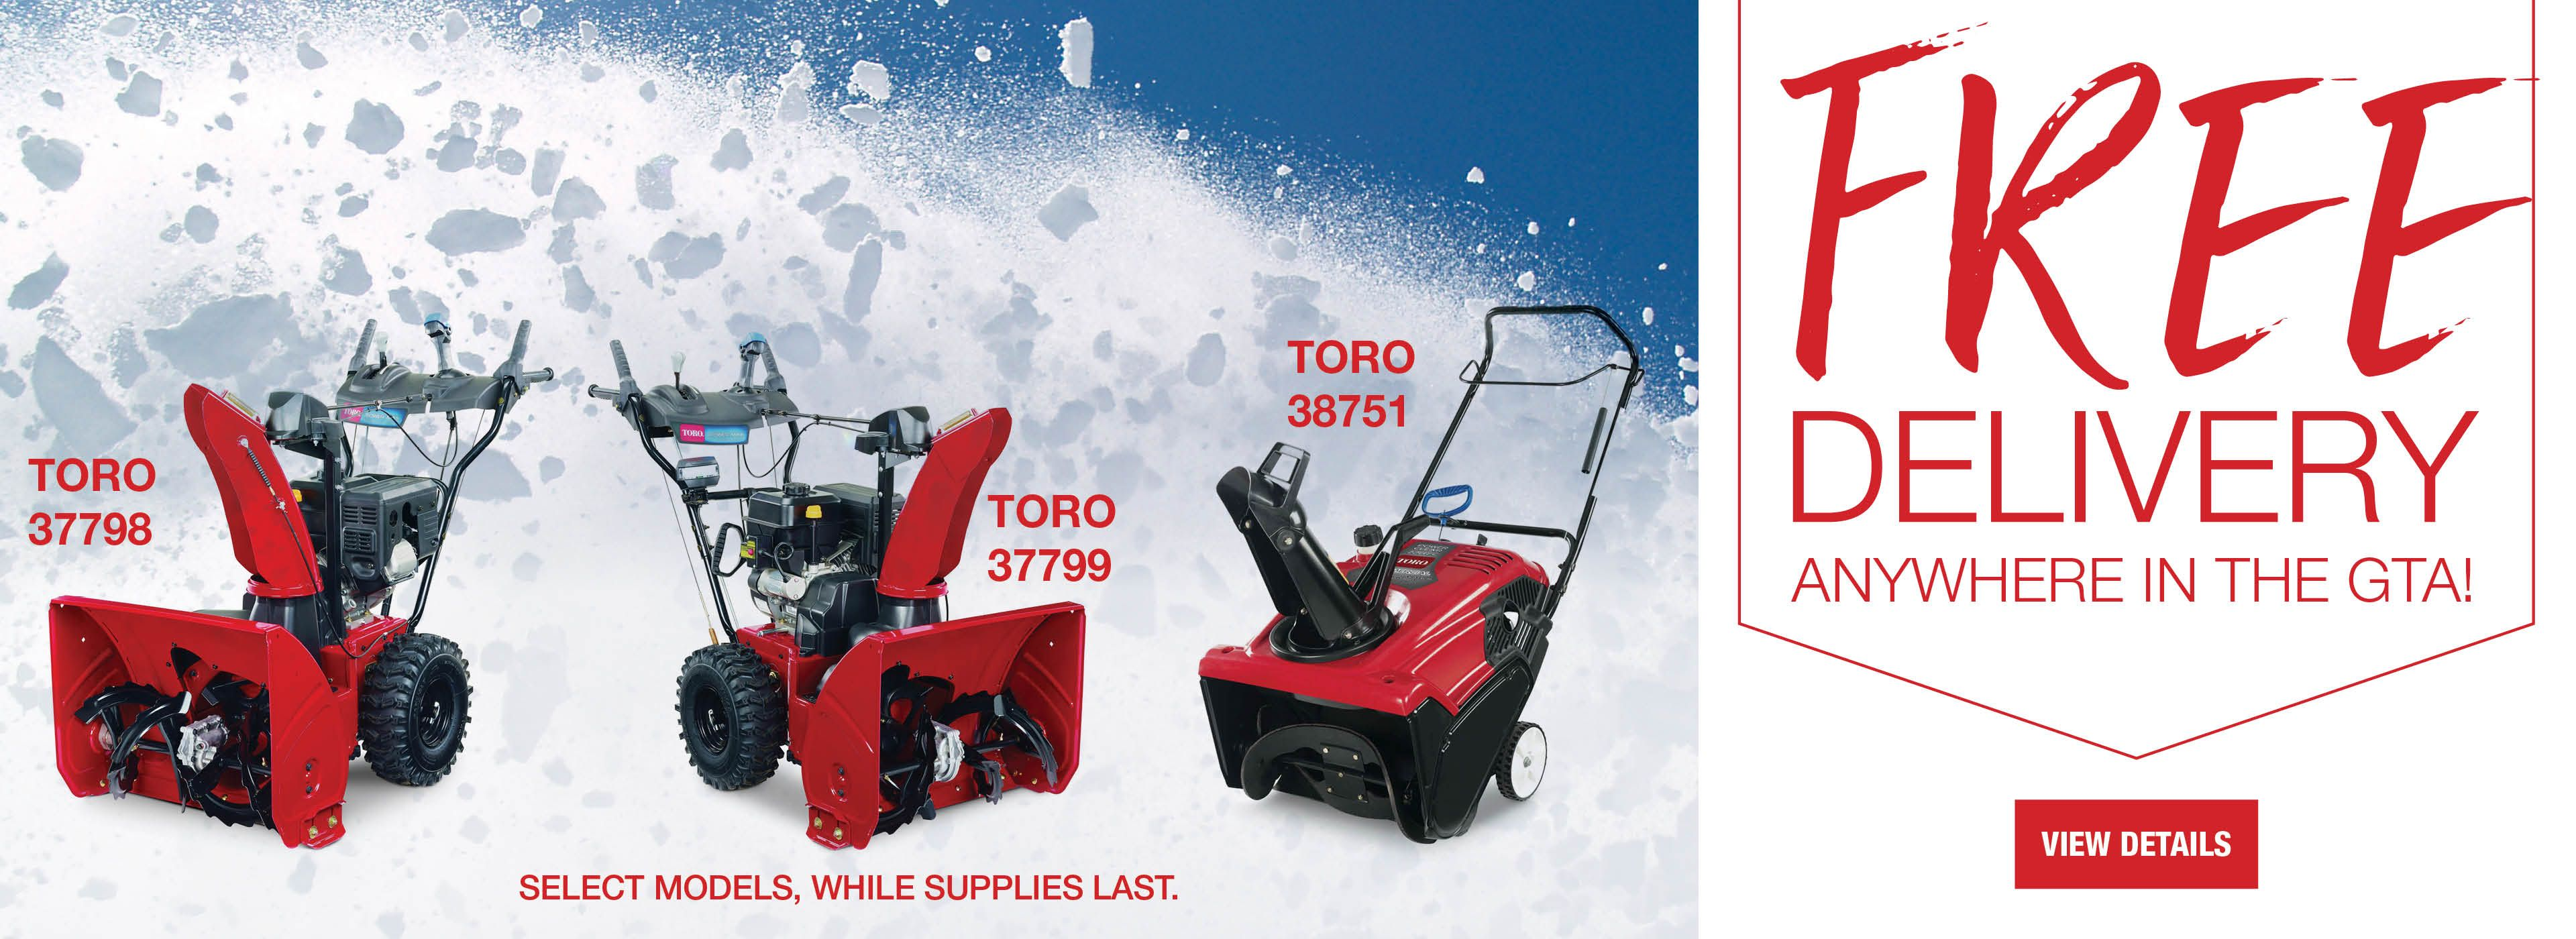 FREE Snowblower Delivery